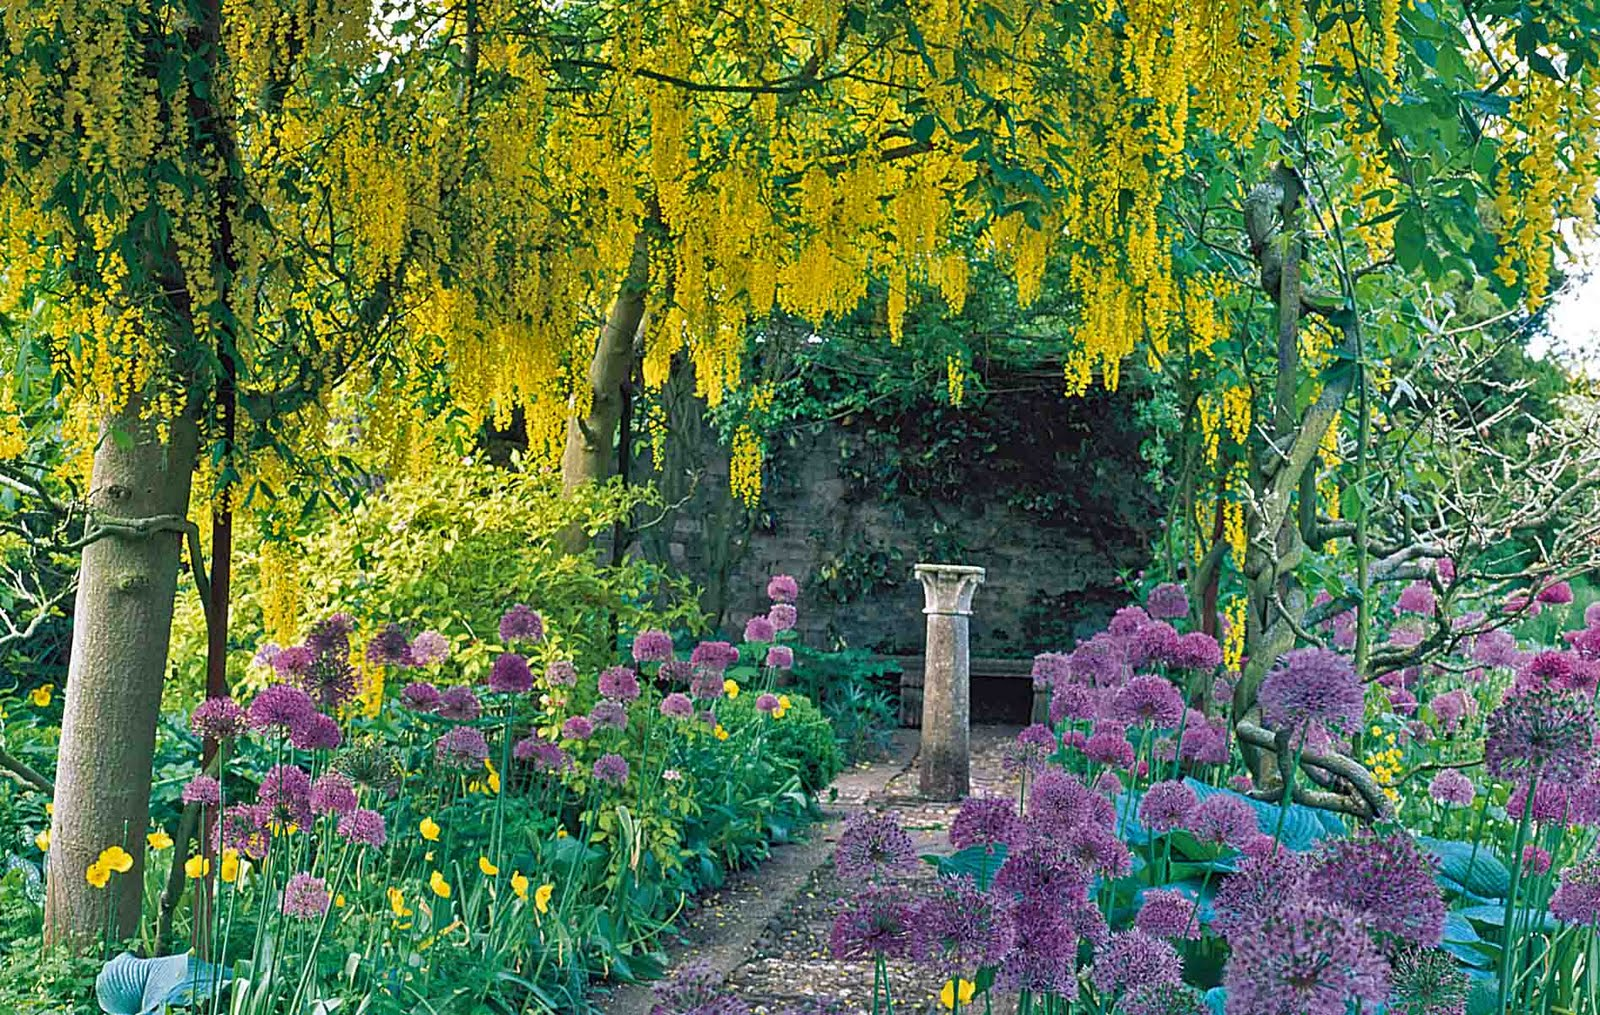 loveUKtravel: Summer Gardens To Visit